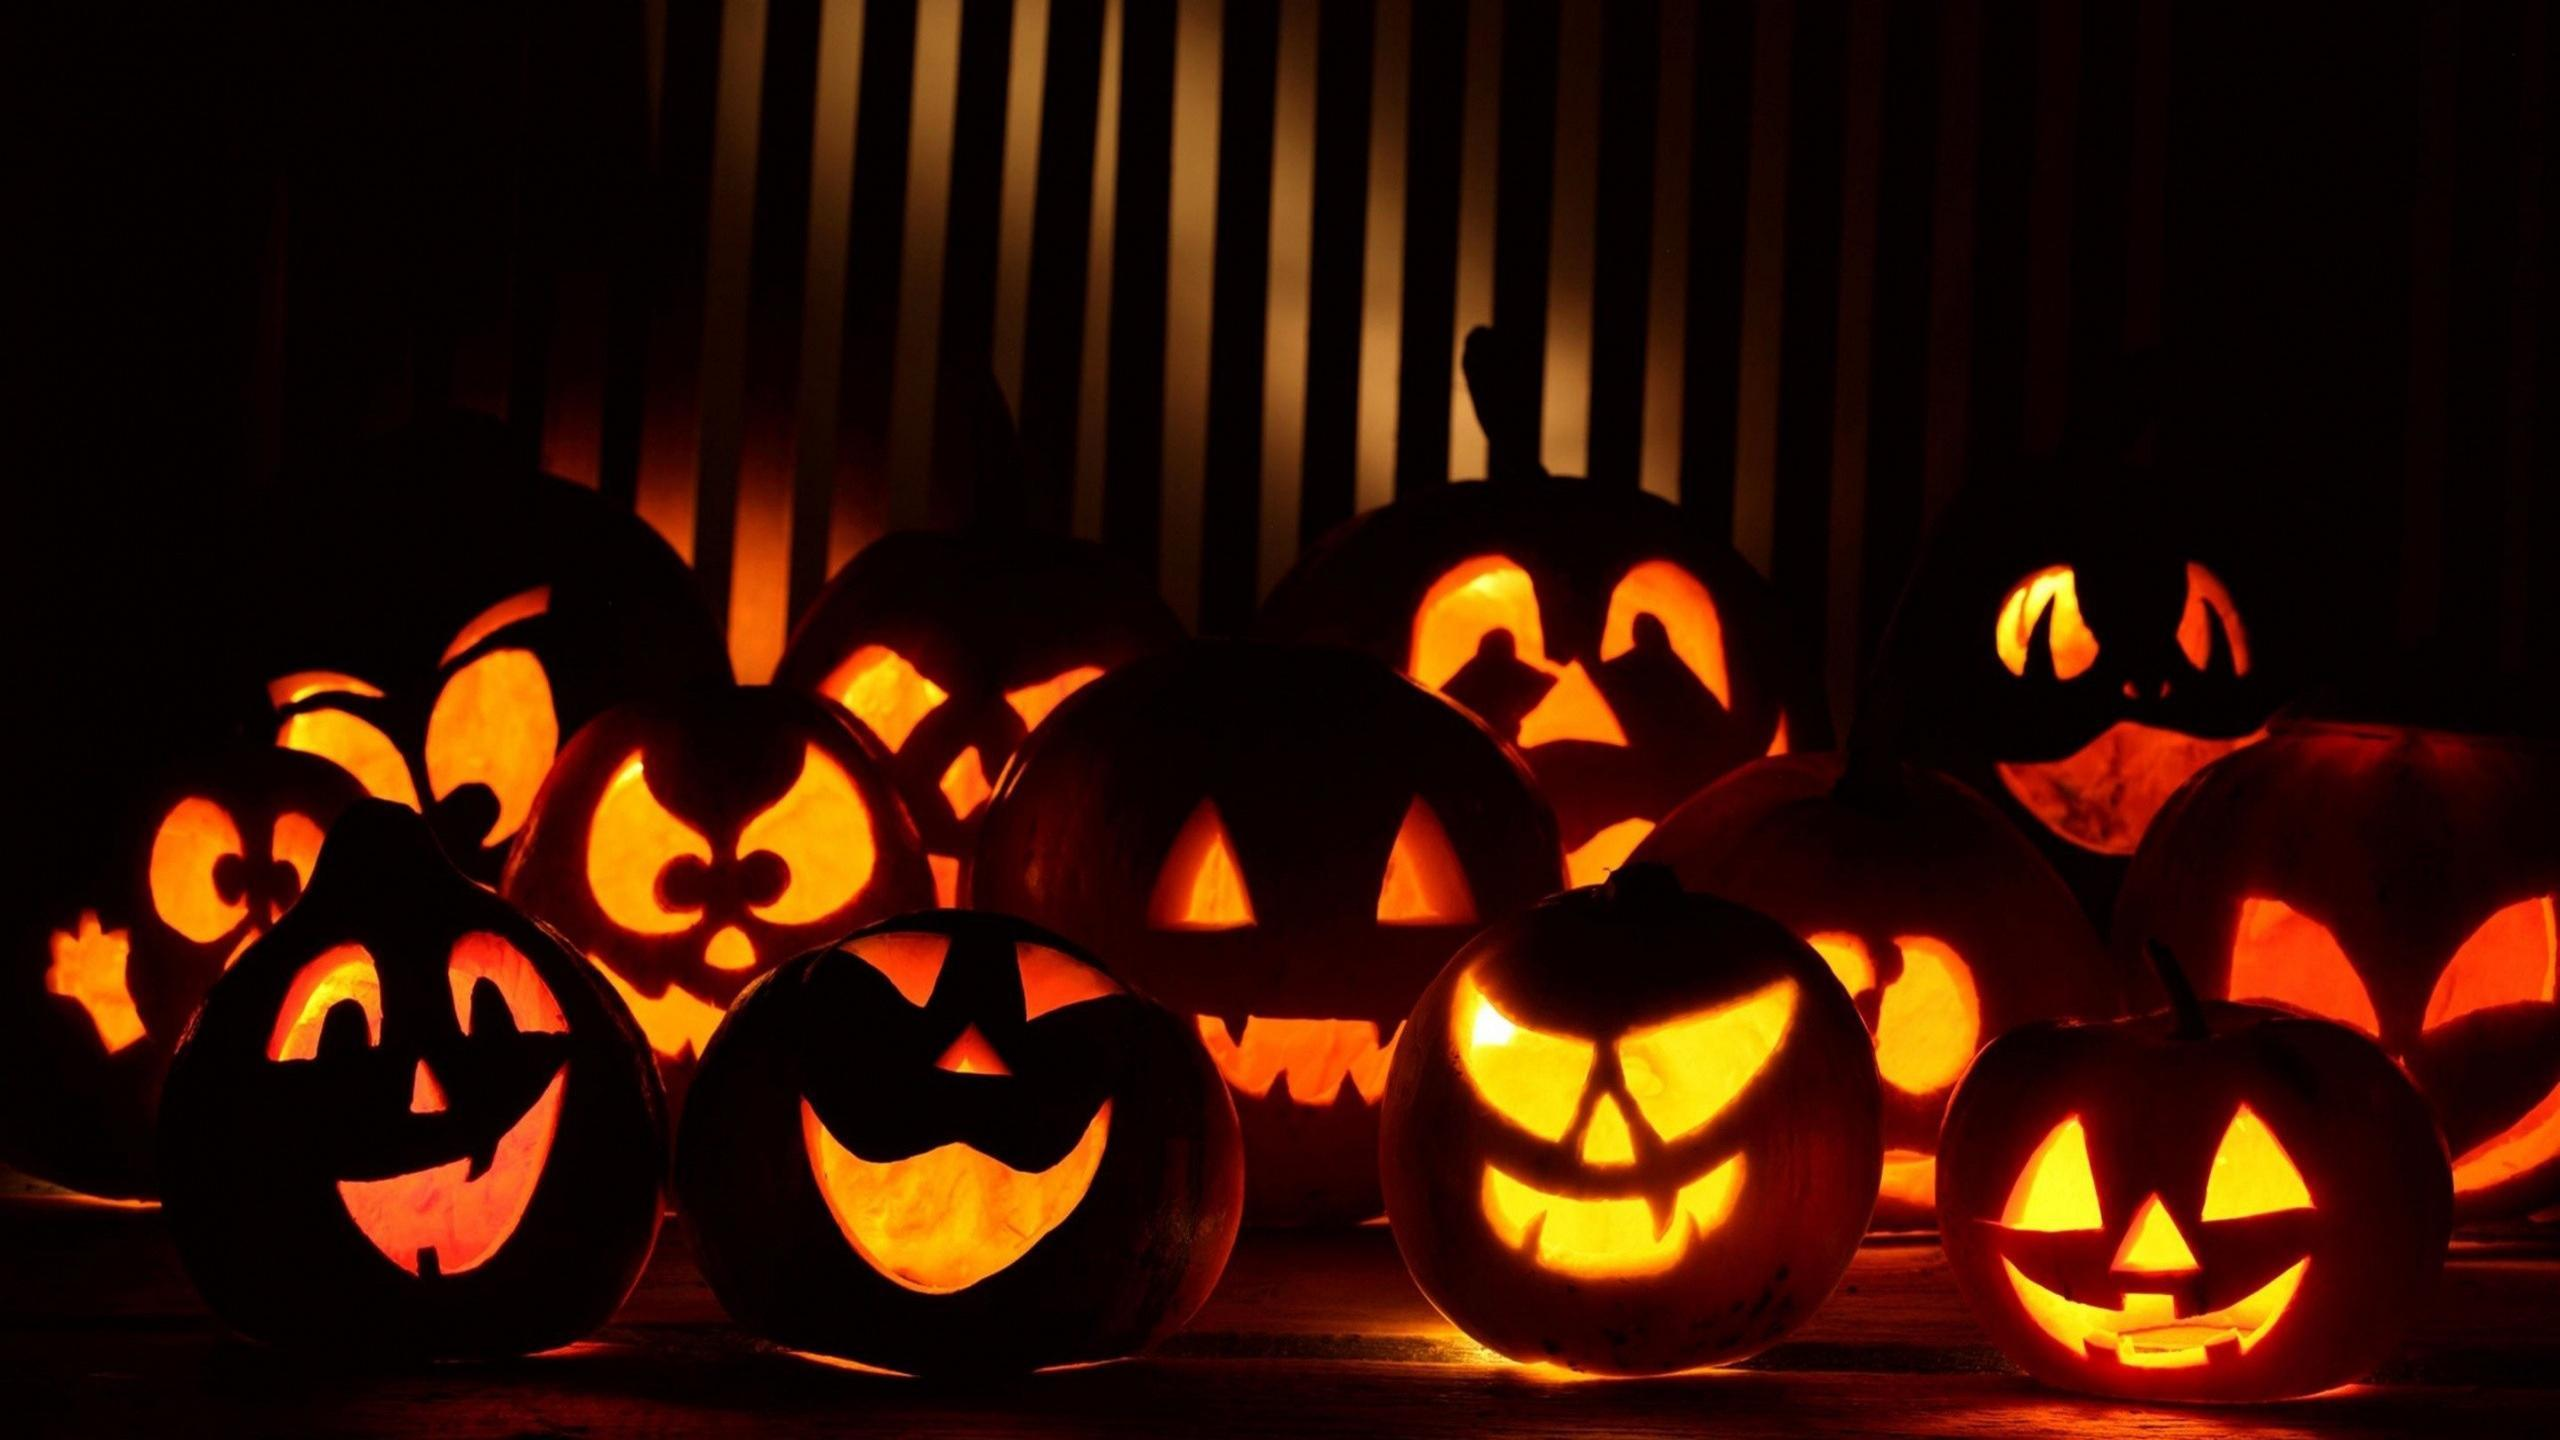 40 Halloween Pumpkins Wallpapers HD for Desktop